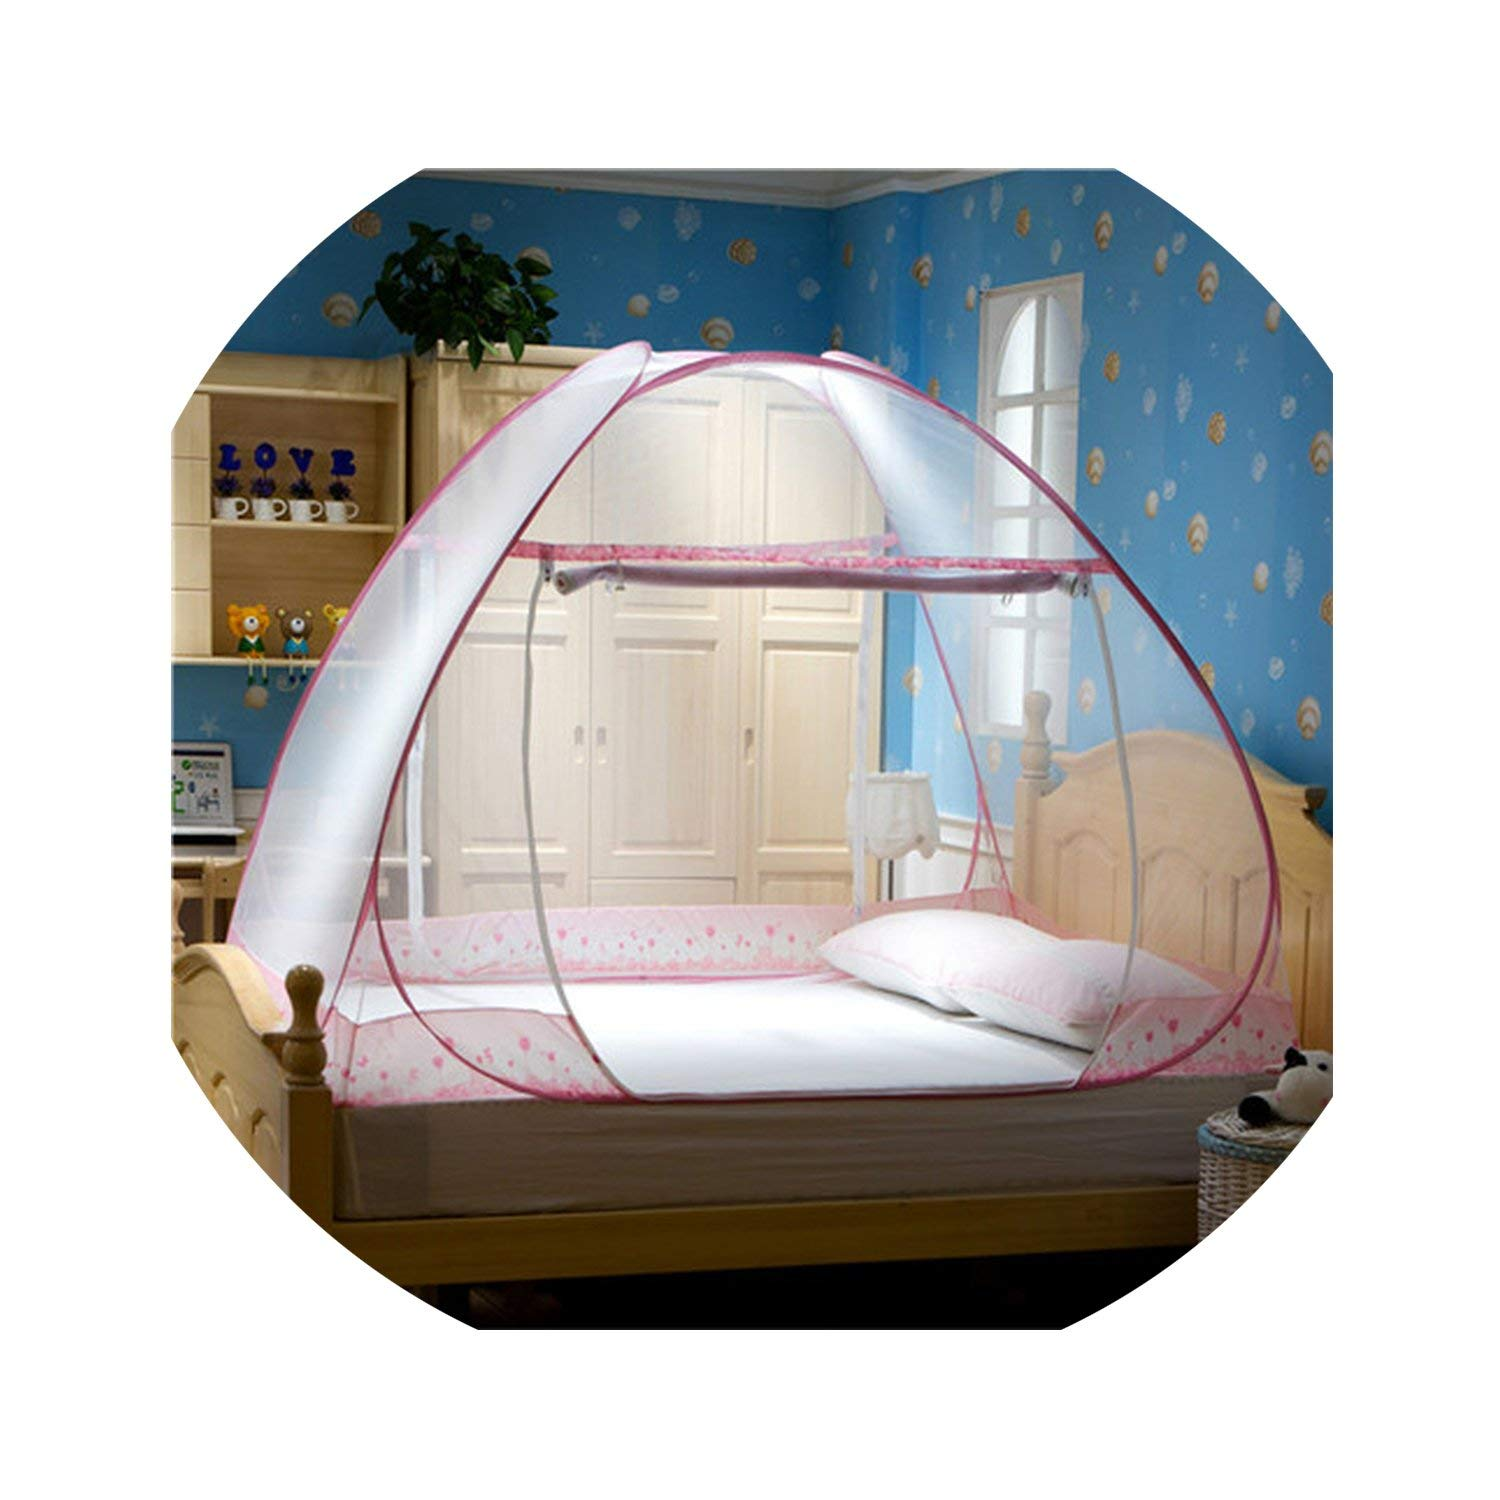 Home Textile Blue Folding Mongolian from Zero Net Pink Portable Mosquito Nets Bed Insecticide Treated Netting 1.8M Double Bed Net,Pink Two Door,1.5M (5 Feet) Bed